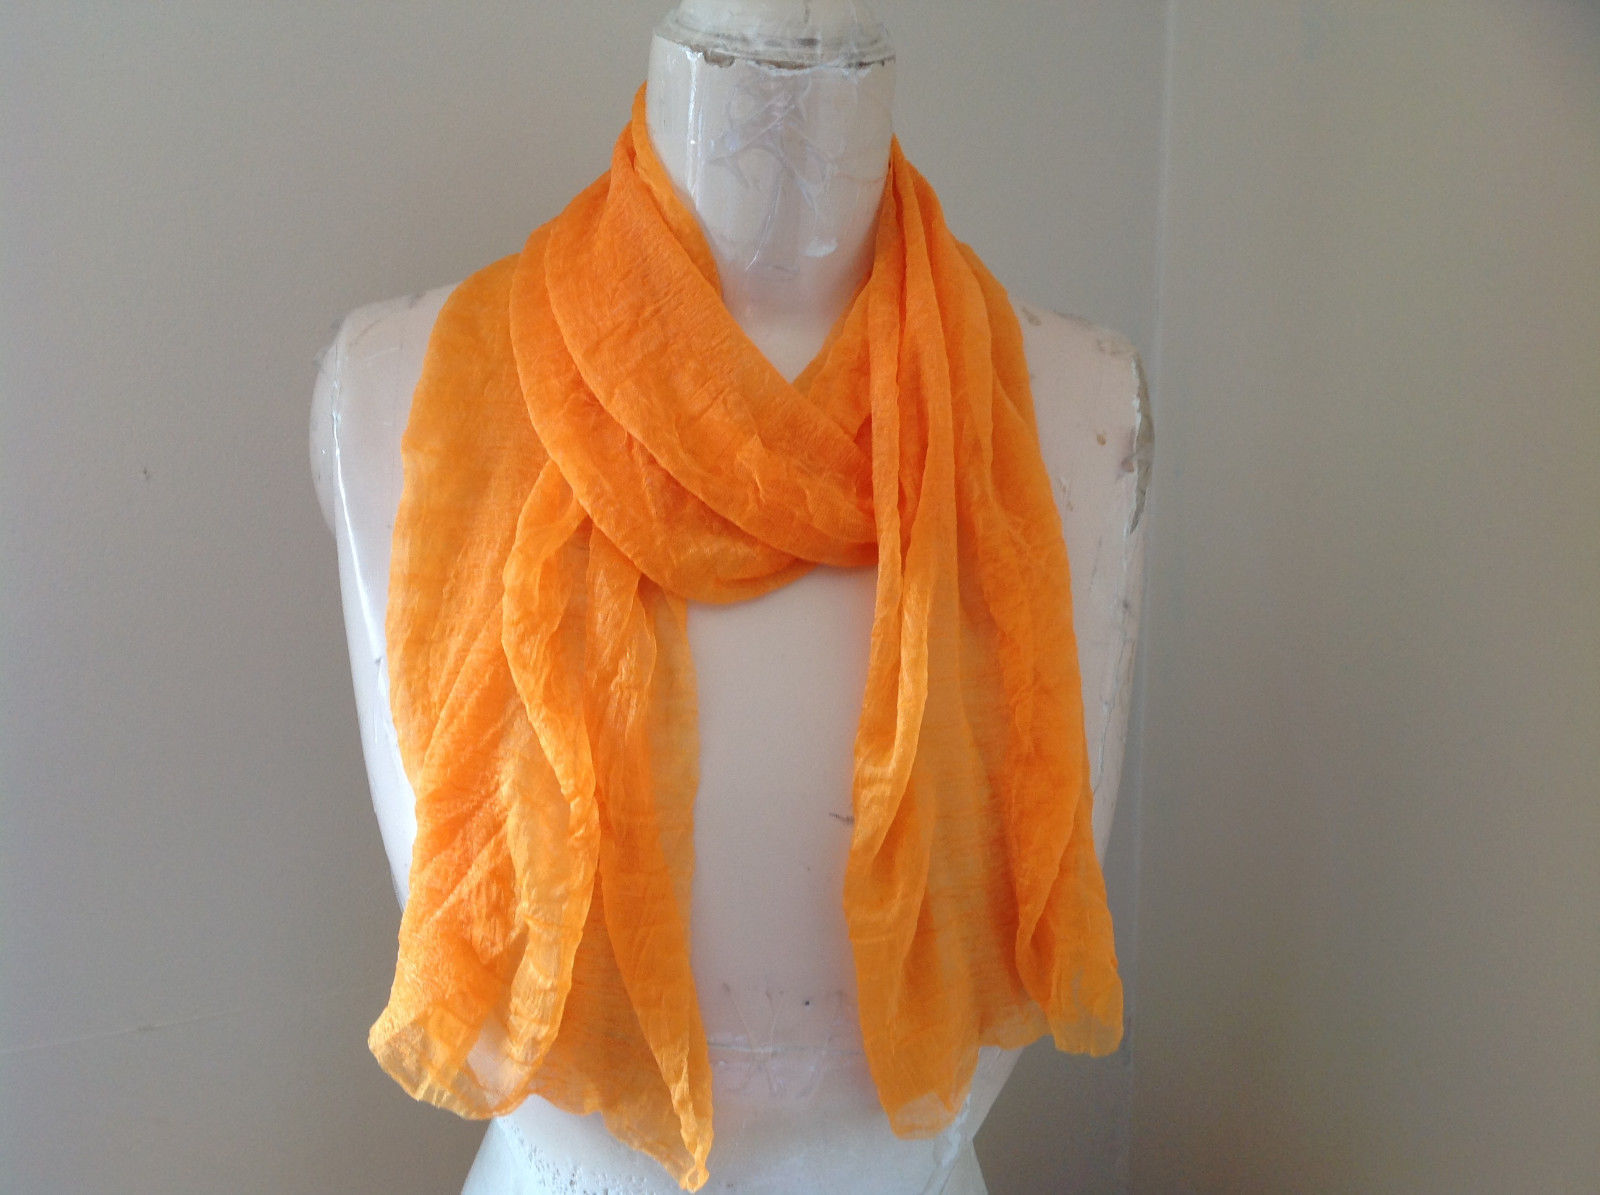 Bright Tangerine Orange Fashion Scarf Light Weight Material 60 Inches Long